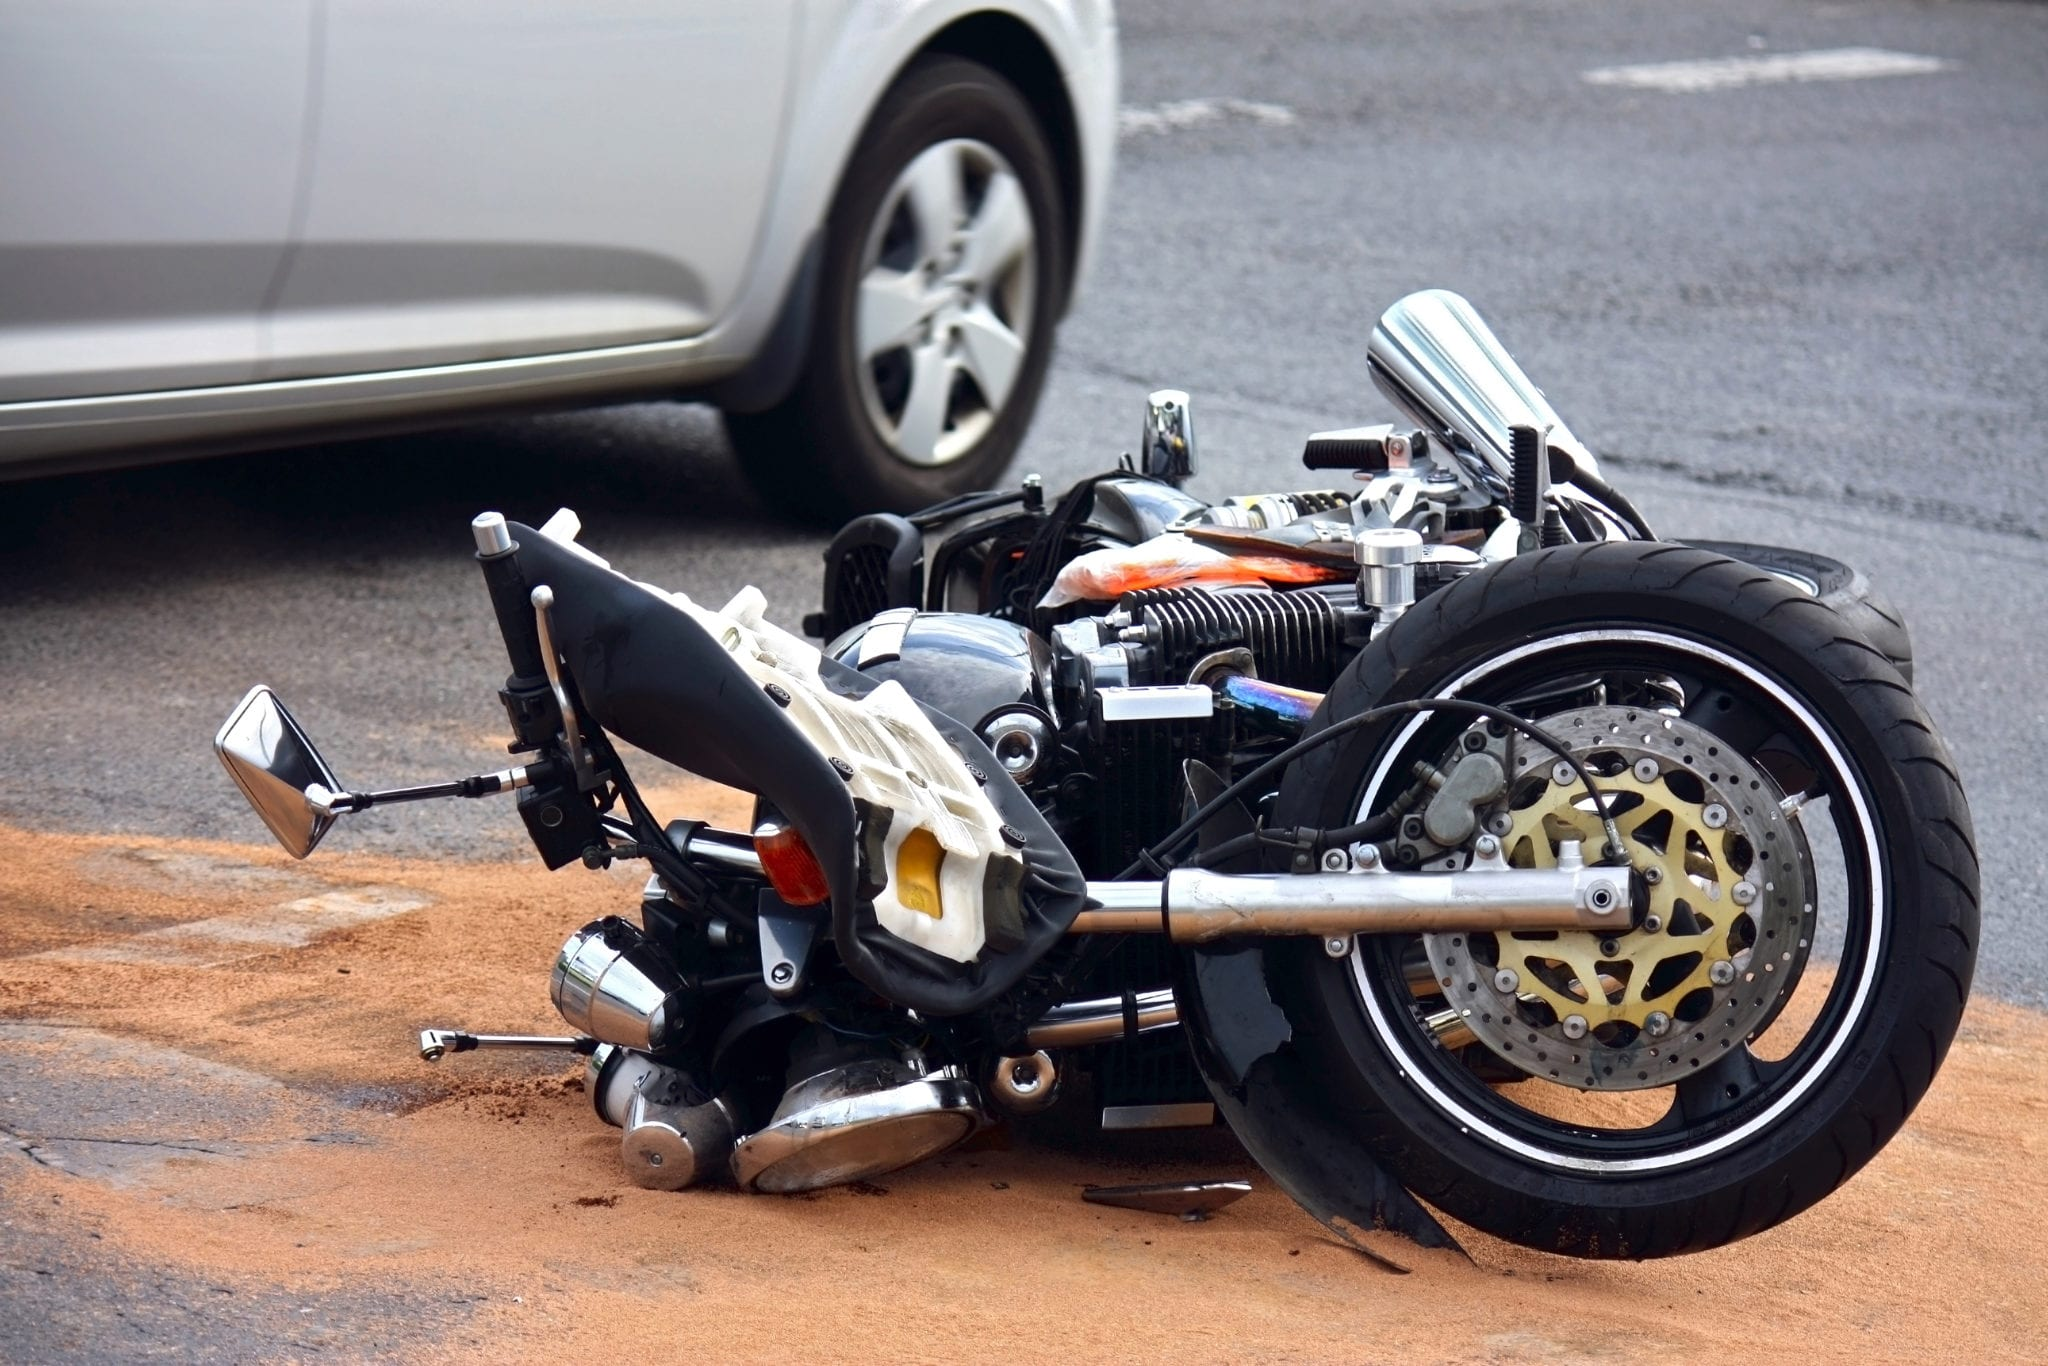 Common Injuries Motorcycle Accident Personal Injury Attorney Auto Wrecks Georgia